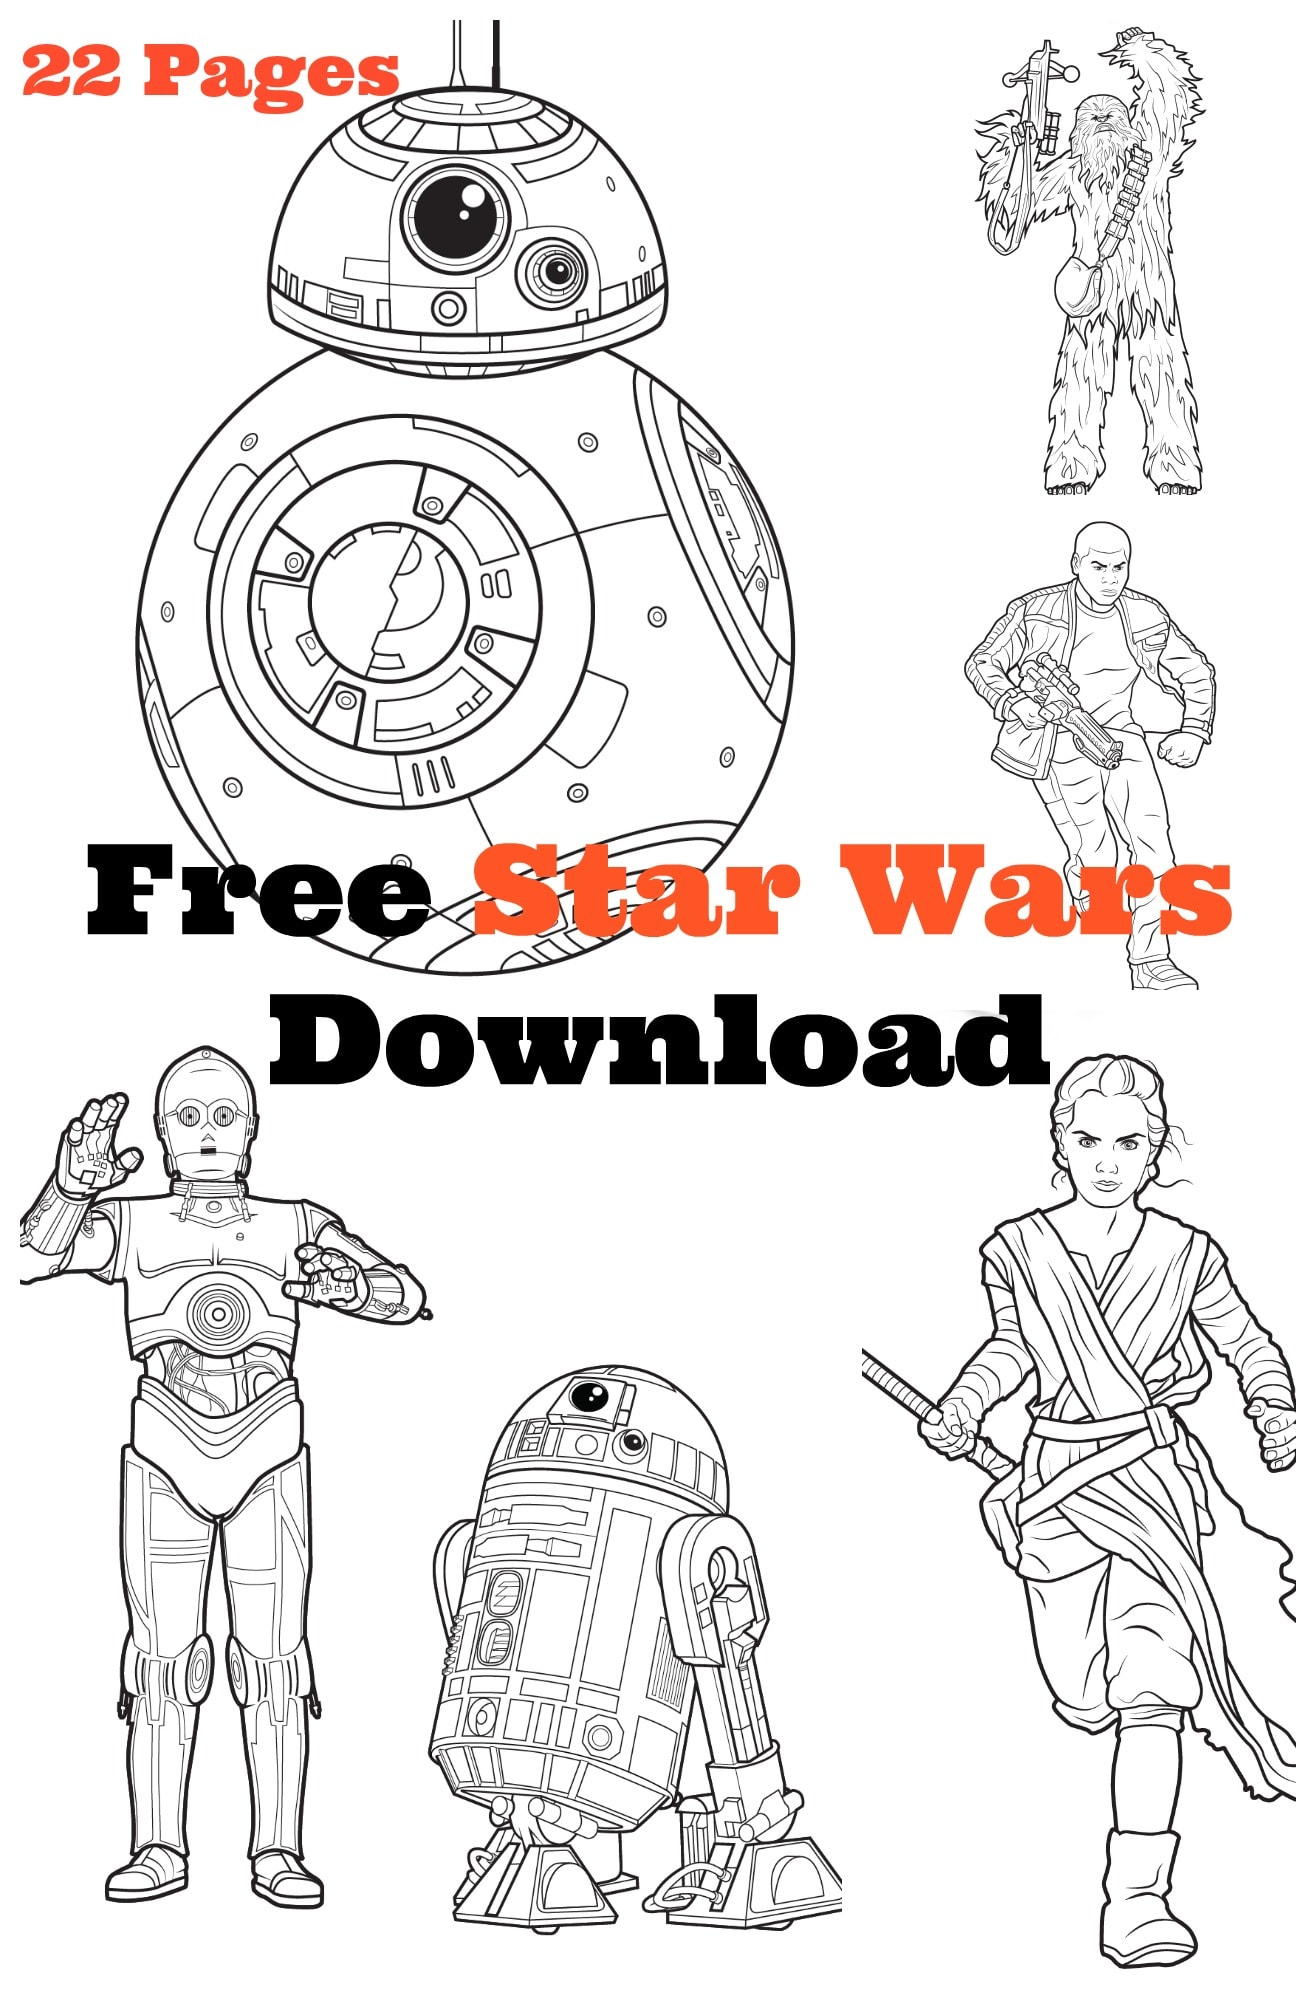 mega star wars free coloring activity kit download here starwars theforceawakens lady and the blog - Star Wars Free Coloring Pages